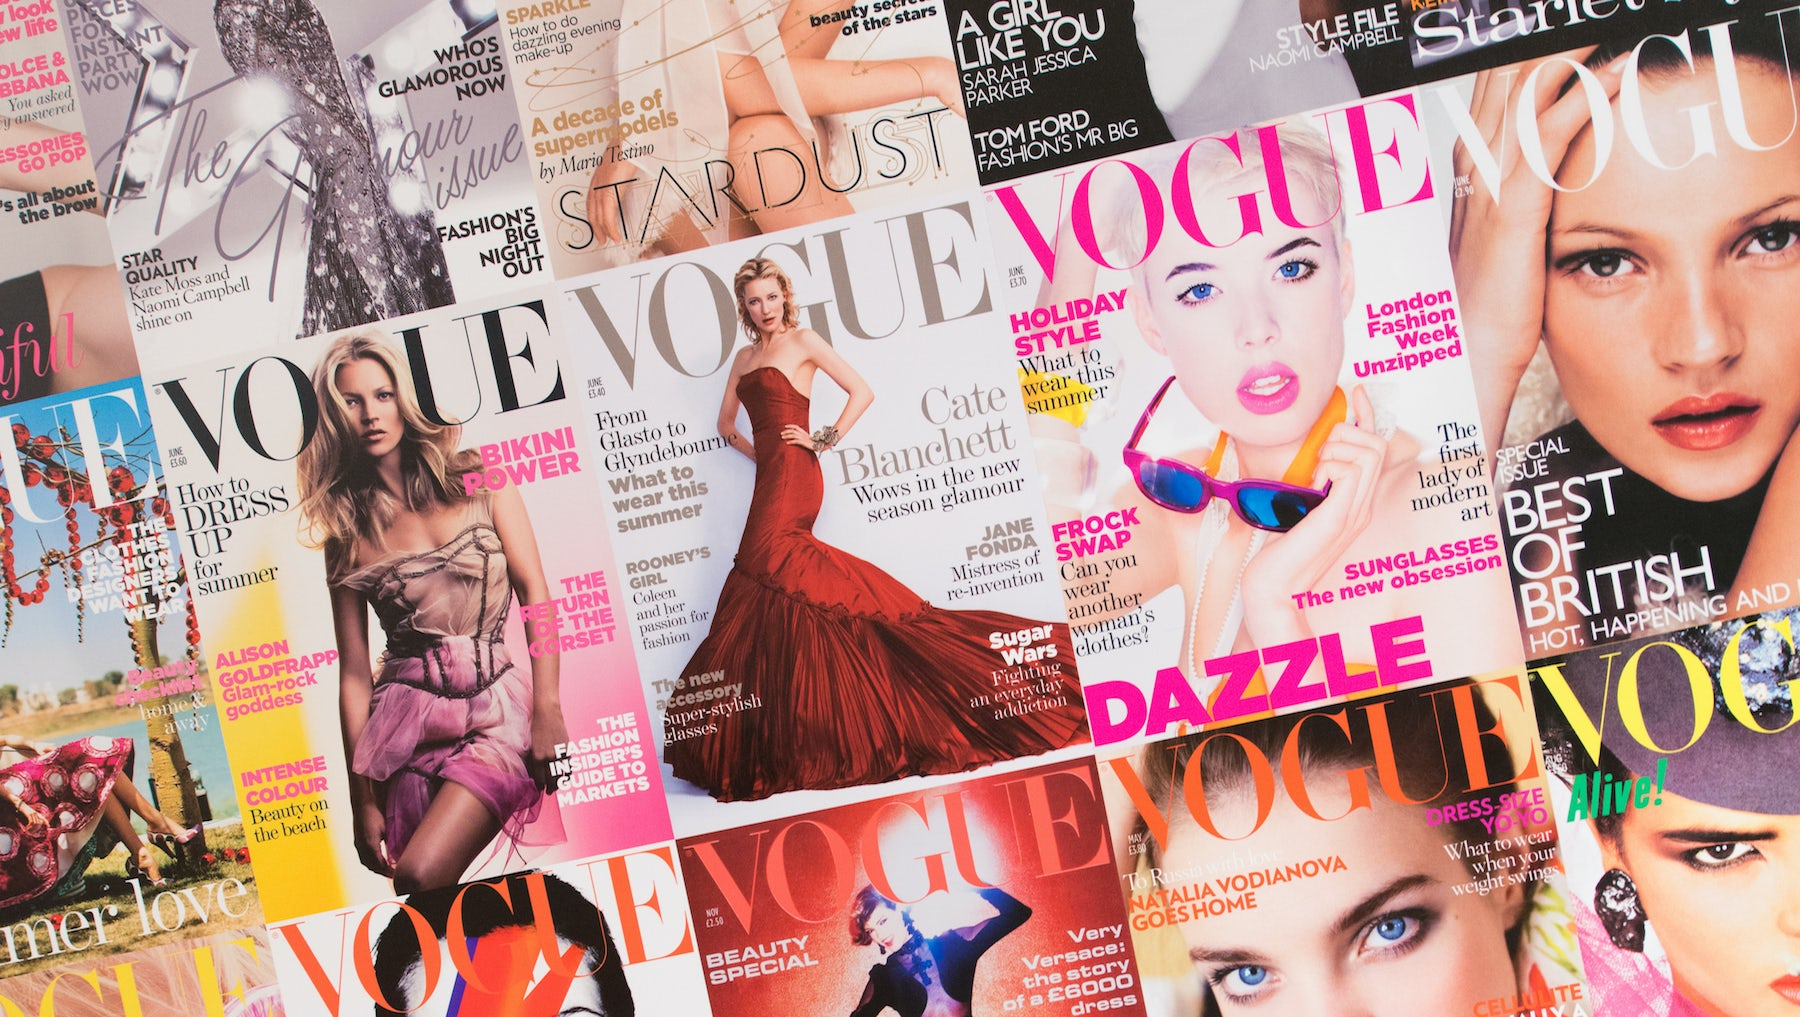 Social Goods | Vogue's Race Problem, Tiffany Allegedly Pushes Out Employee with Cancer